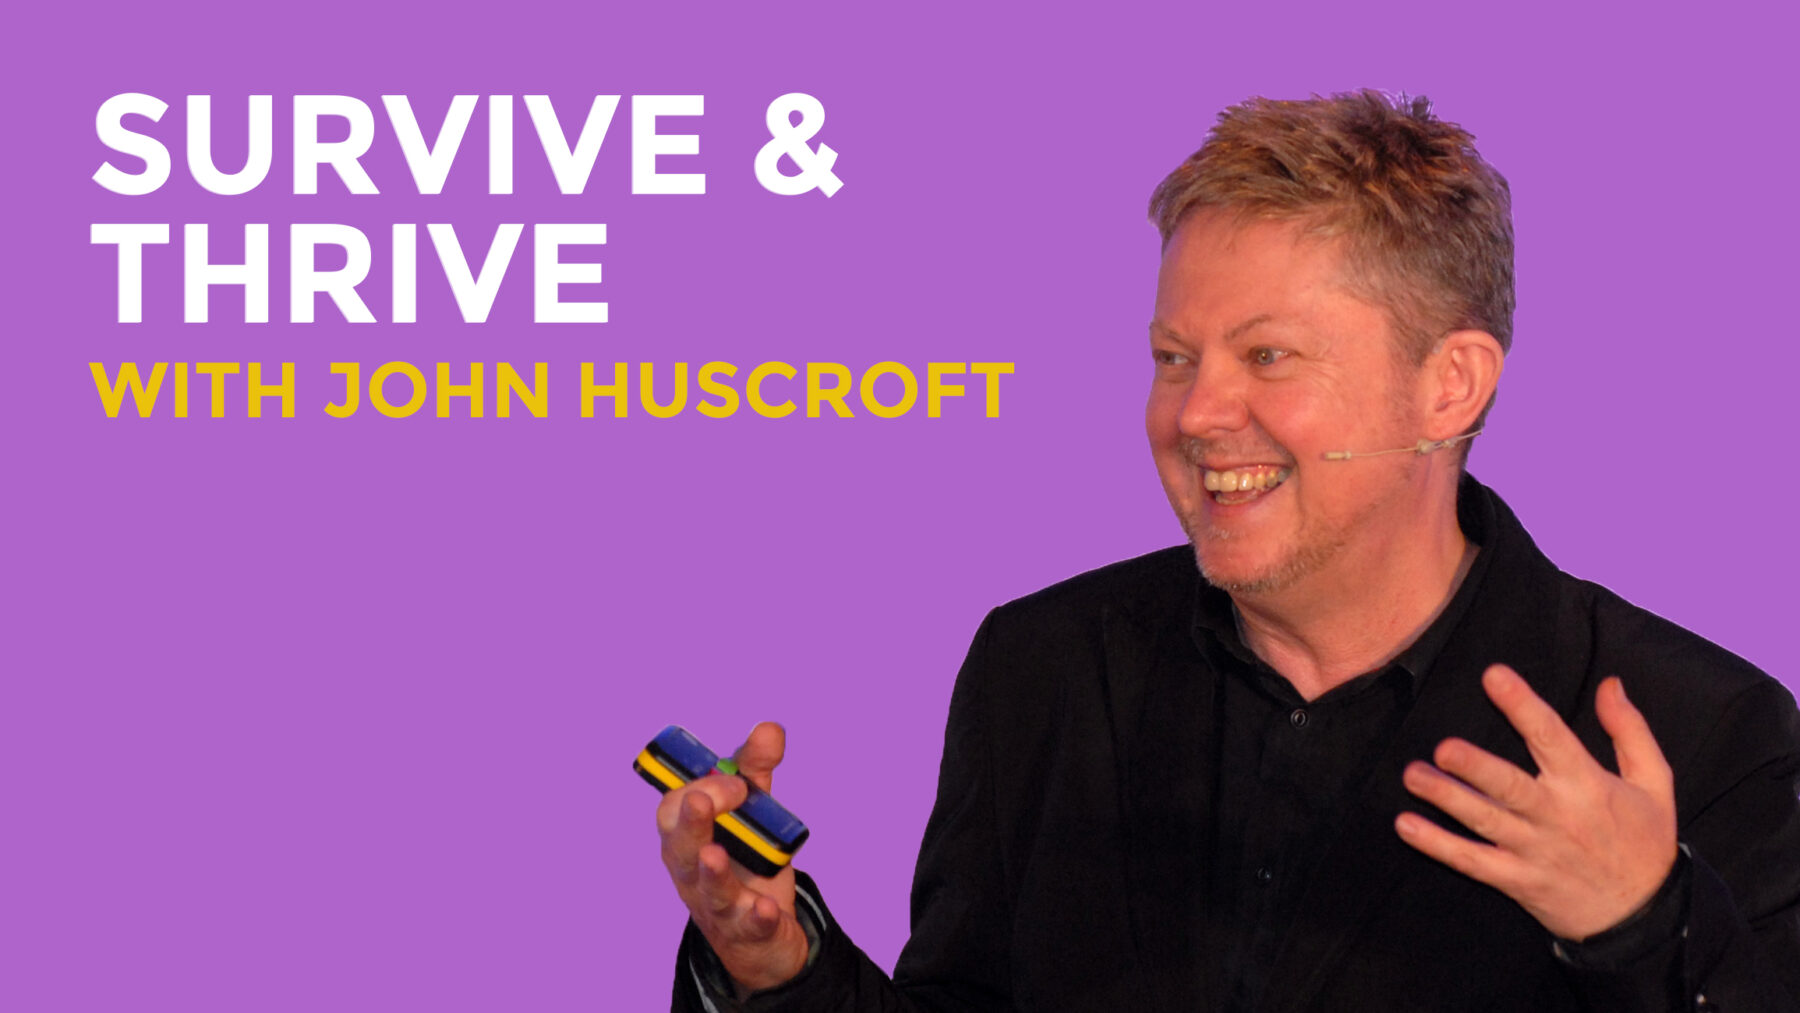 Survive and Thrive with John Huscroft